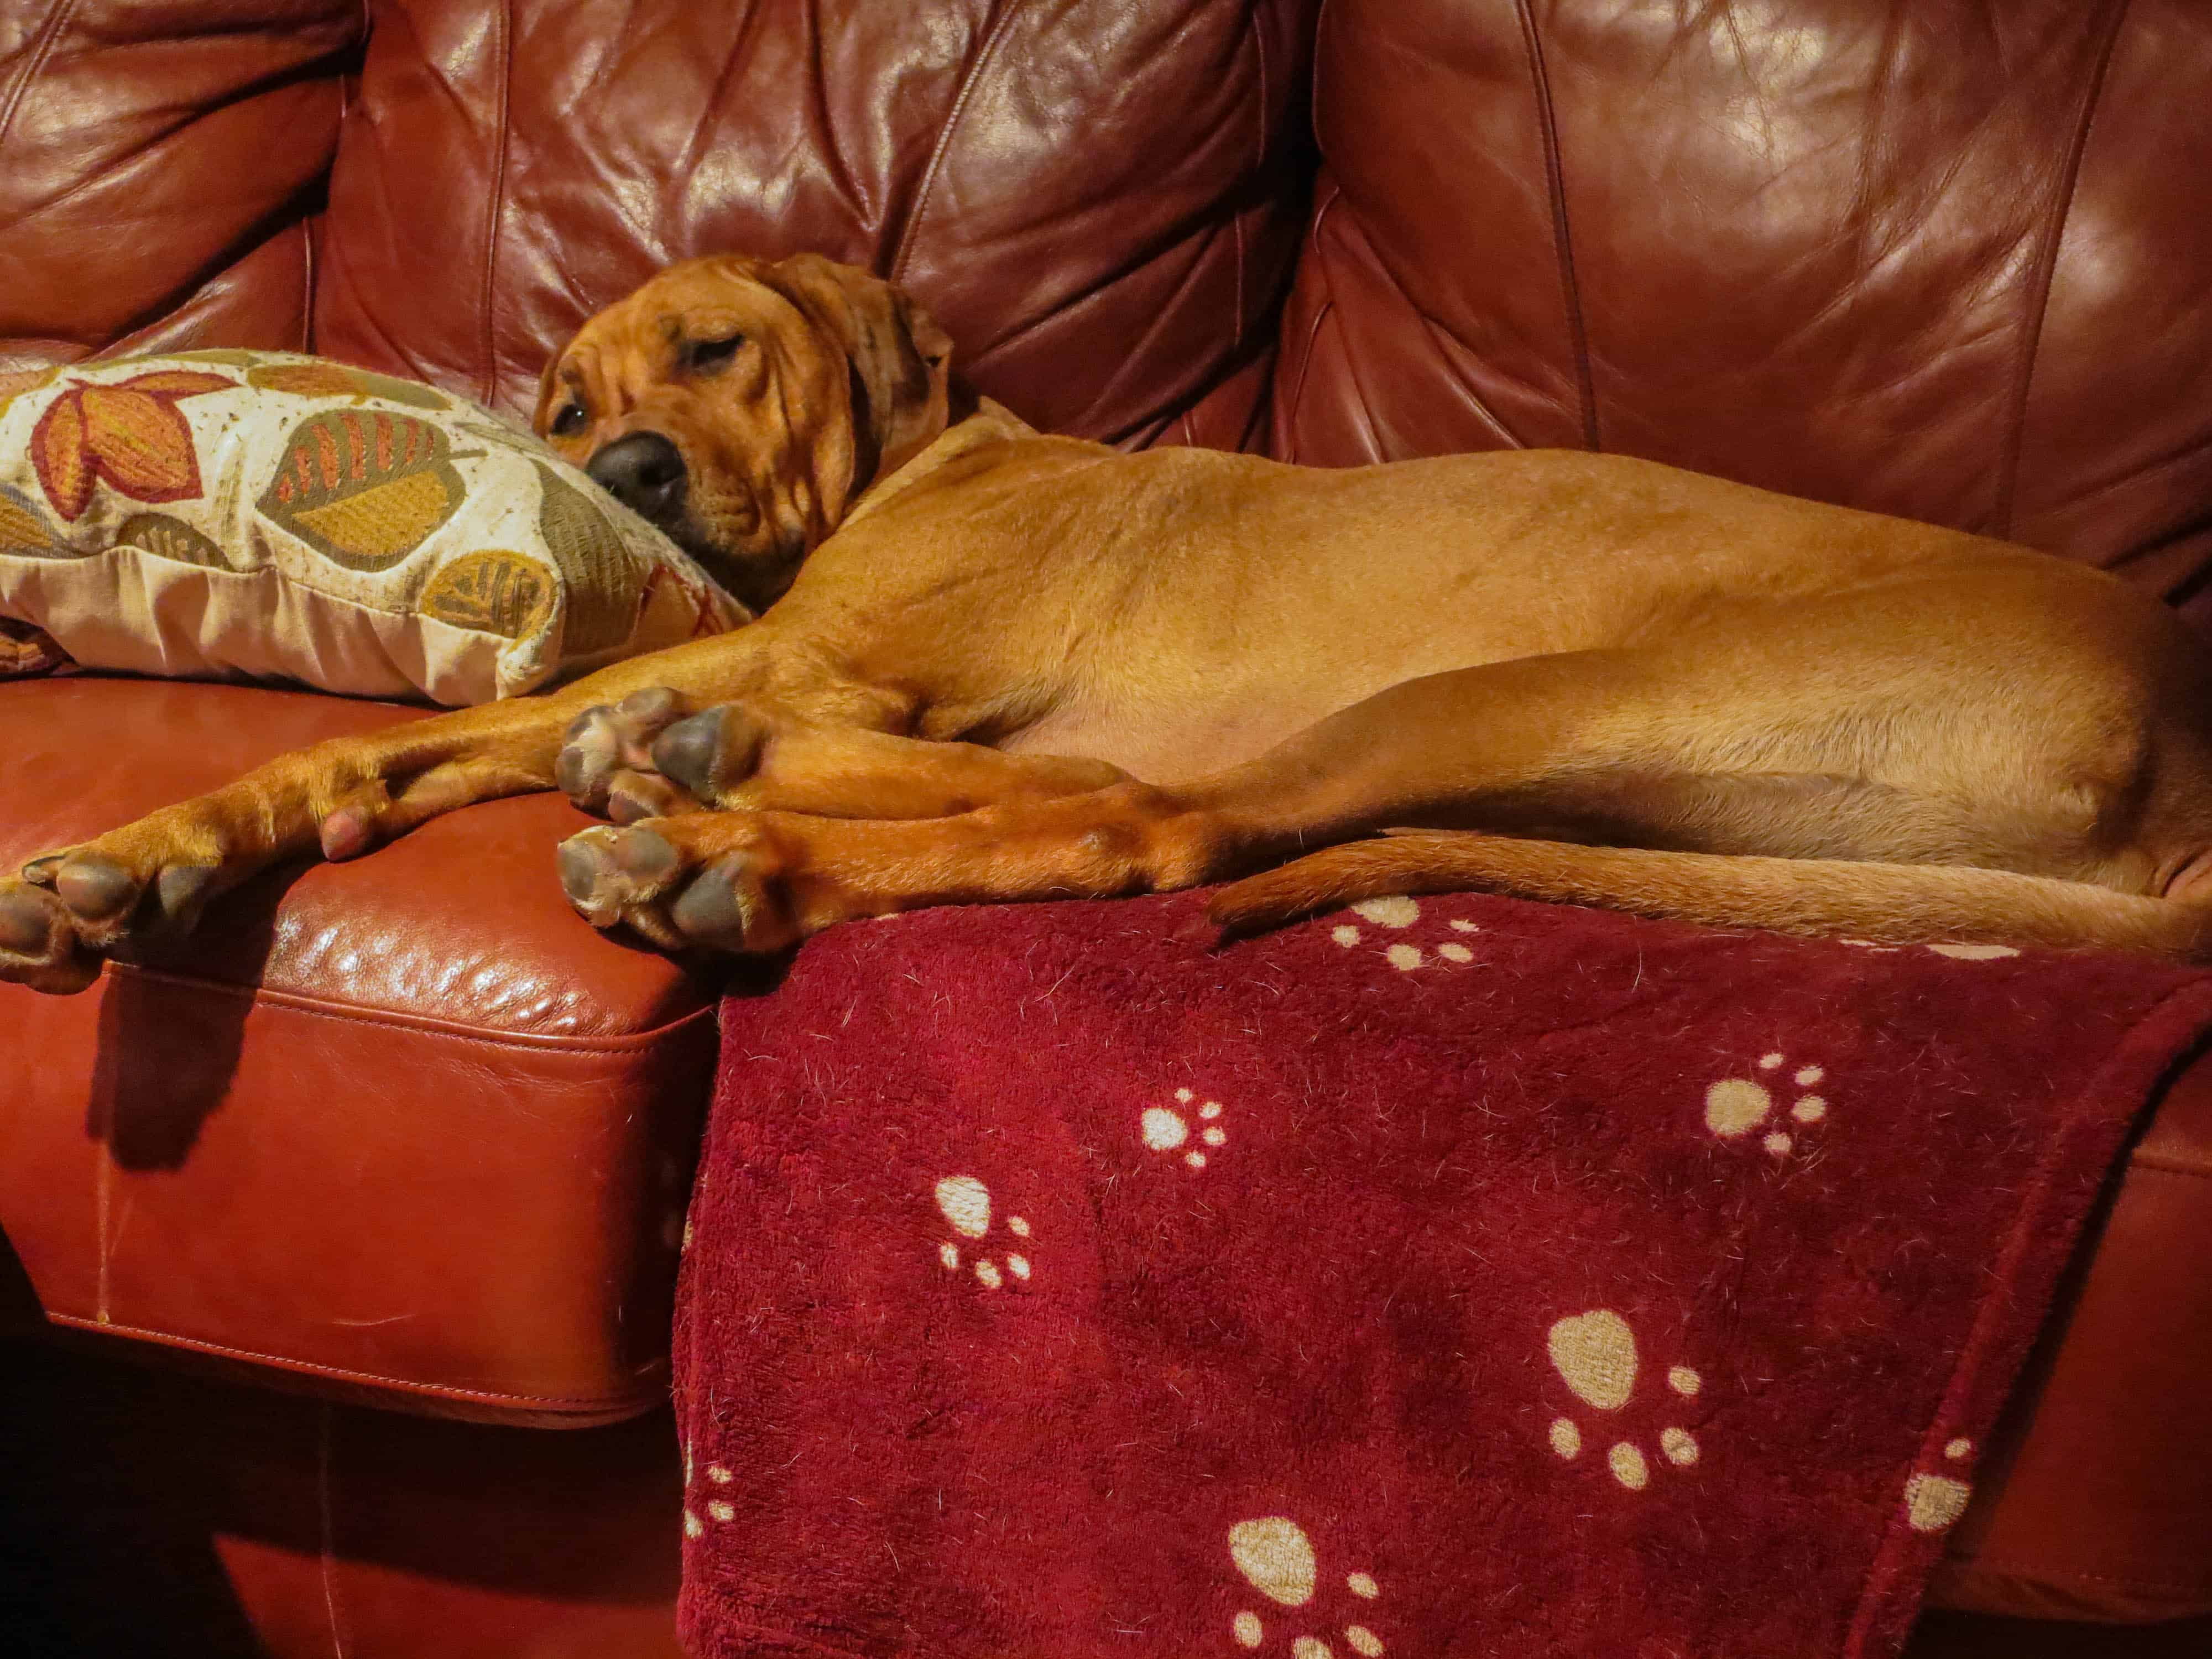 Rhodesian Ridgeback, pet adventure, dog blog, pet photos, Rhodesian Ridgeback photo